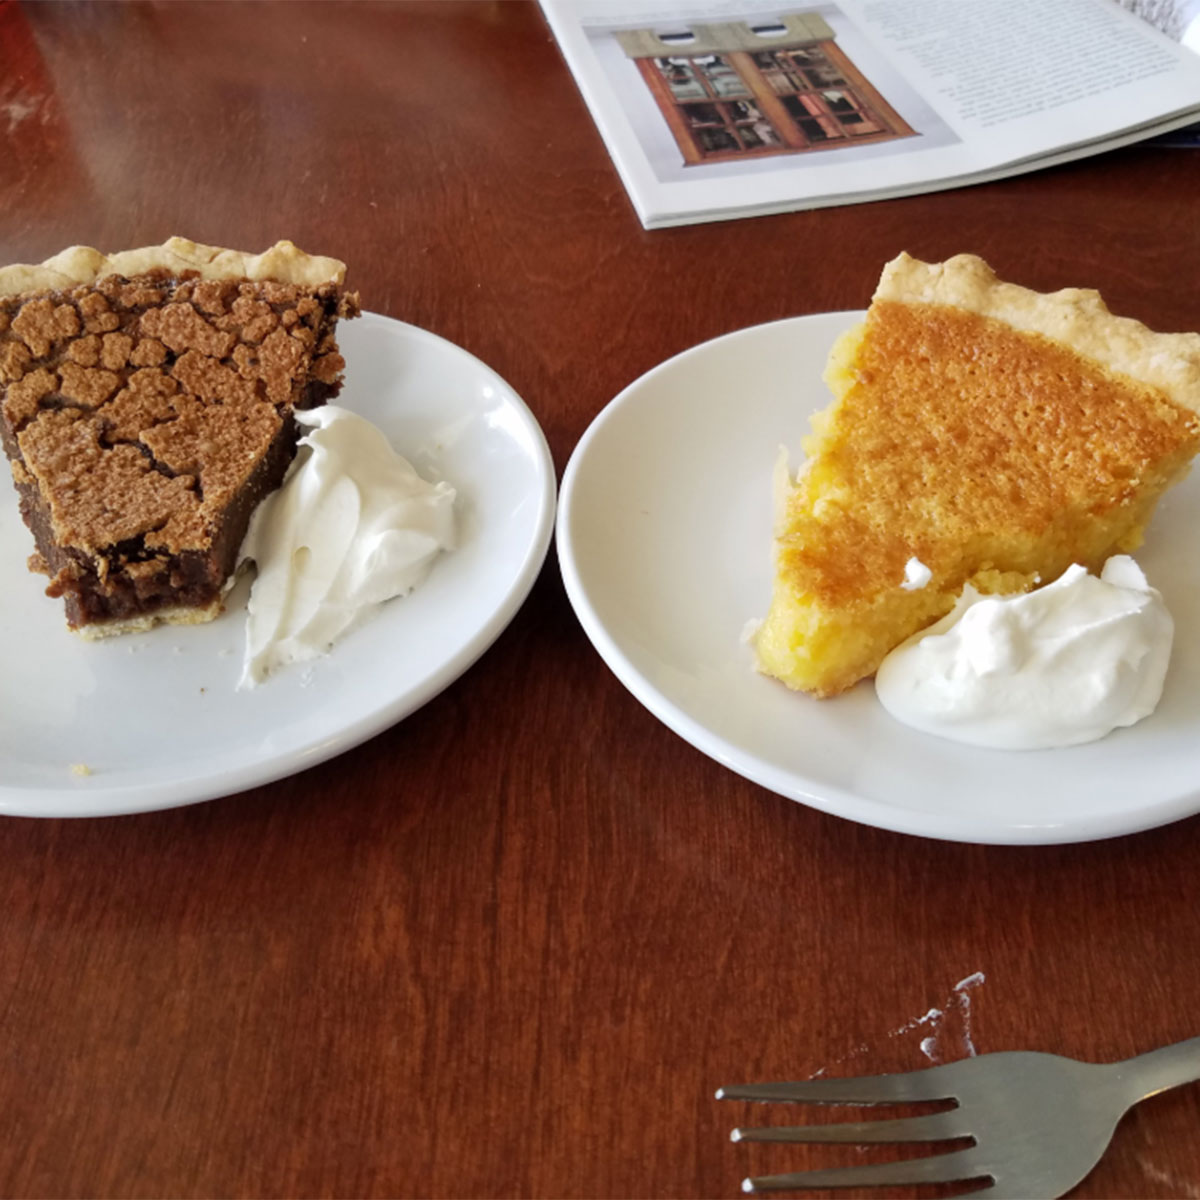 Vermont - The Southern Pie Company, ChesterA little taste of the South awaits at Southern Pie Company. Savor a variety of flavors of chess pie, or their maple buttermilk pie for a uniquely Vermont twist on a southern classic. Don't forget about their pumpkin sweet potato pies in the fall. Still craving that Vermont maple flavor?Photo courtesy TRIPADVISOR.COM